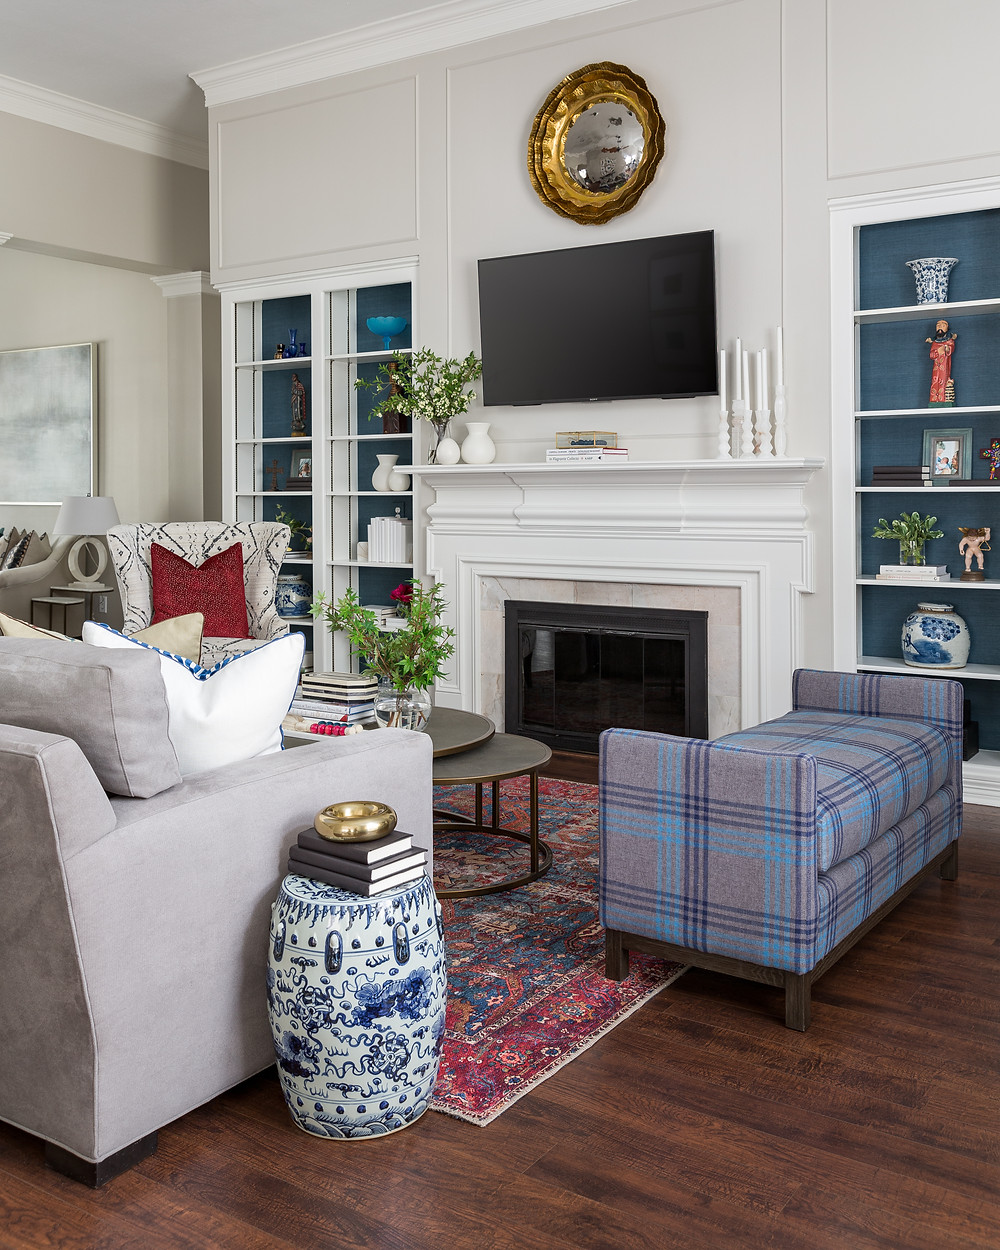 Traditional Color Palette Of Red, Blue And Cream, Grasscloth In Bookcase, Television Above Mantel